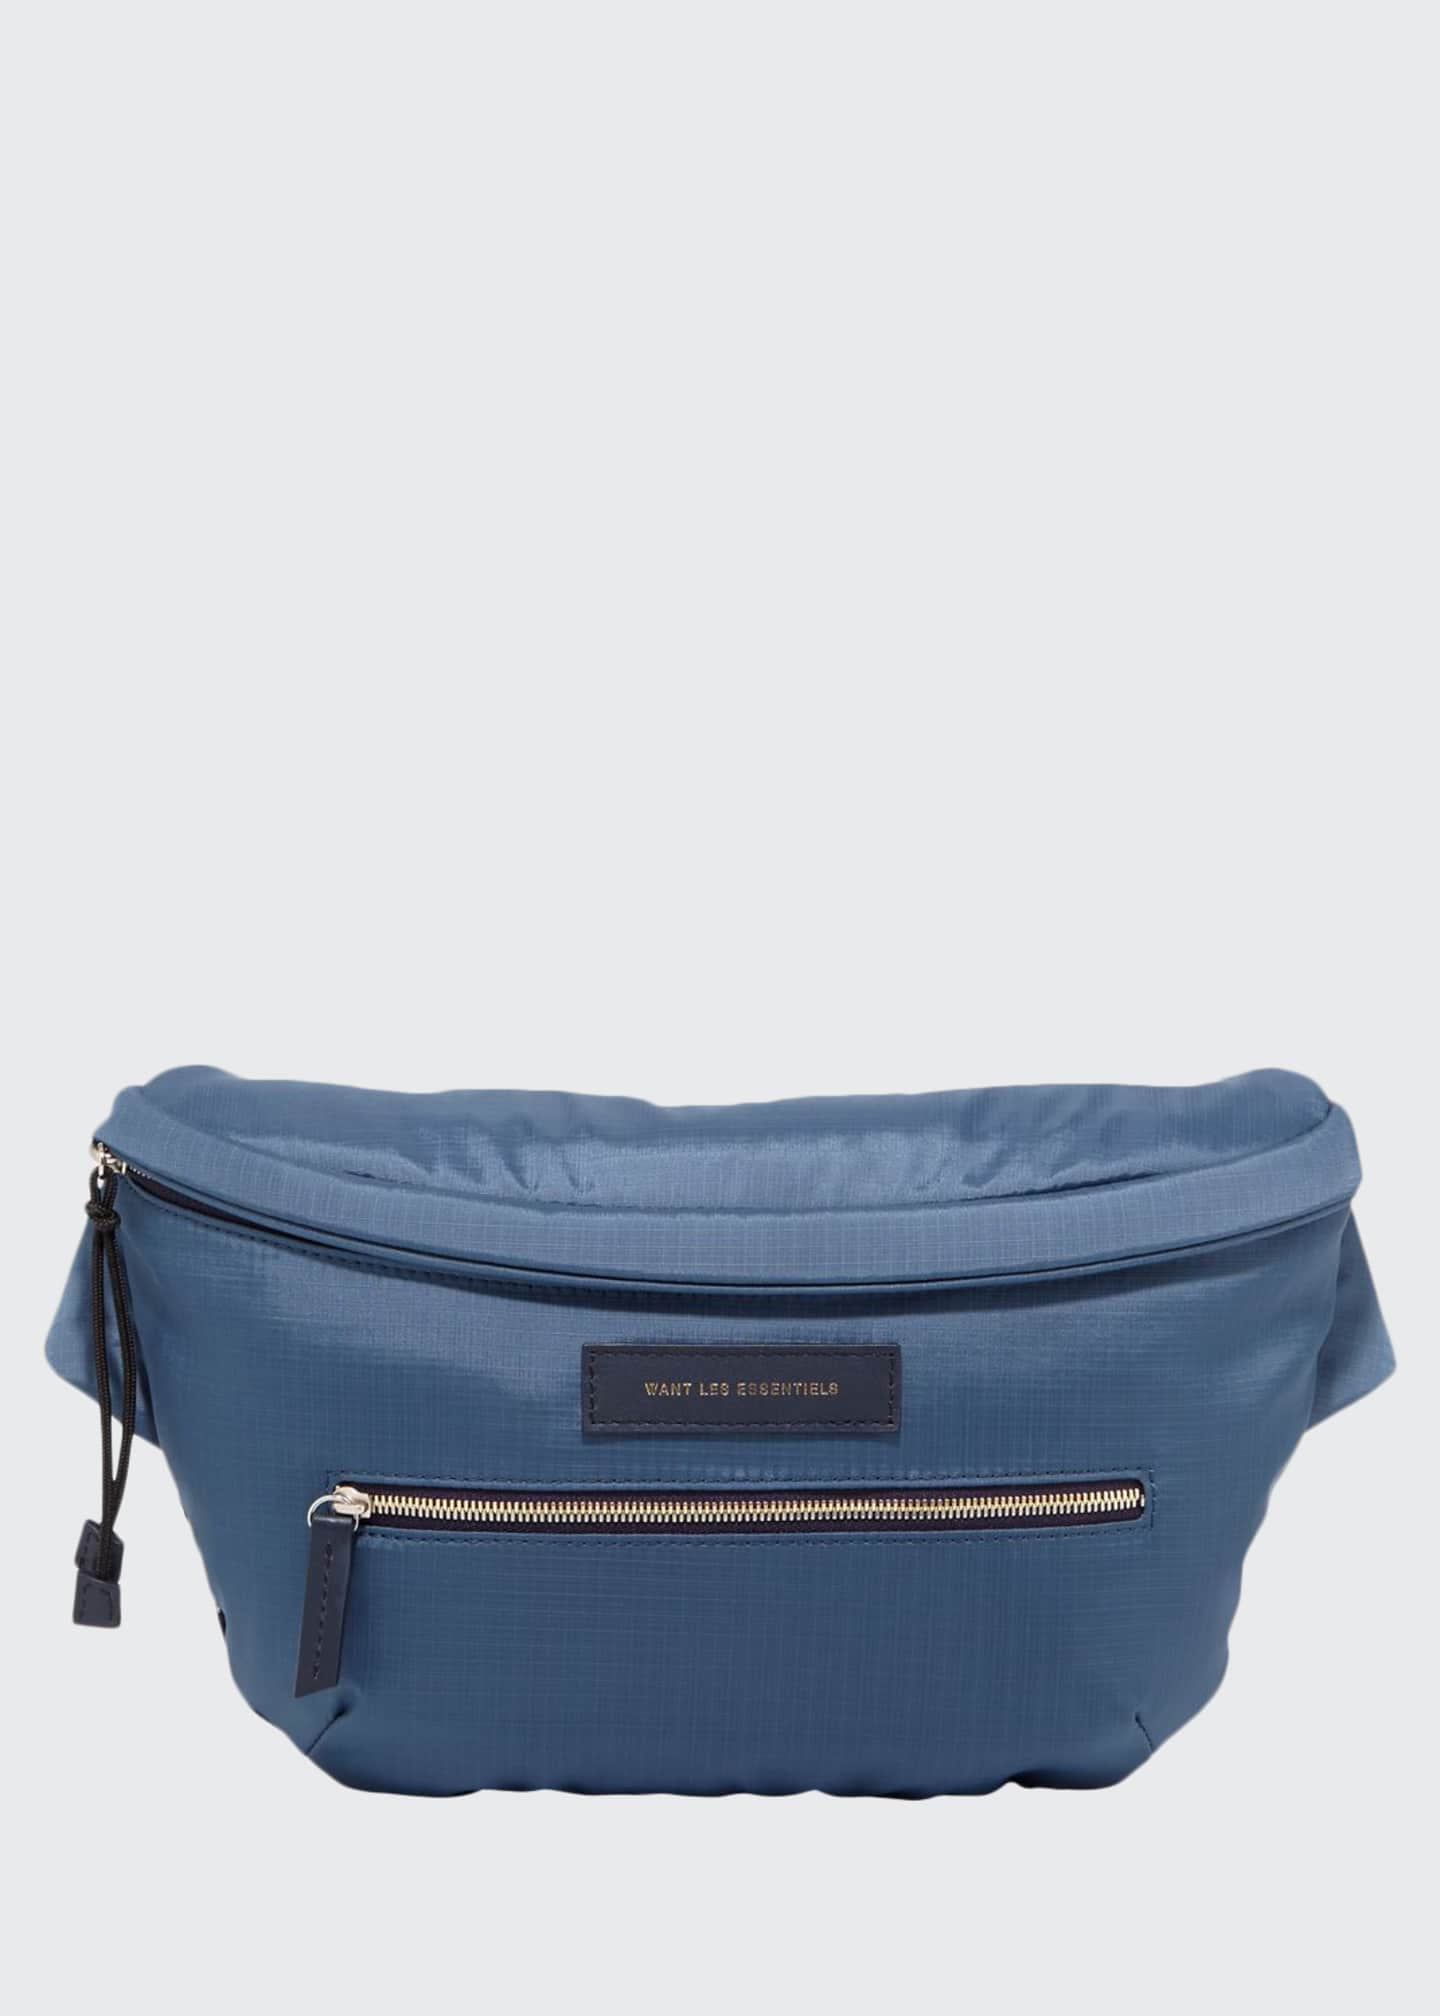 B. x WANT Les Essentiels Men's Fillmore Nylon